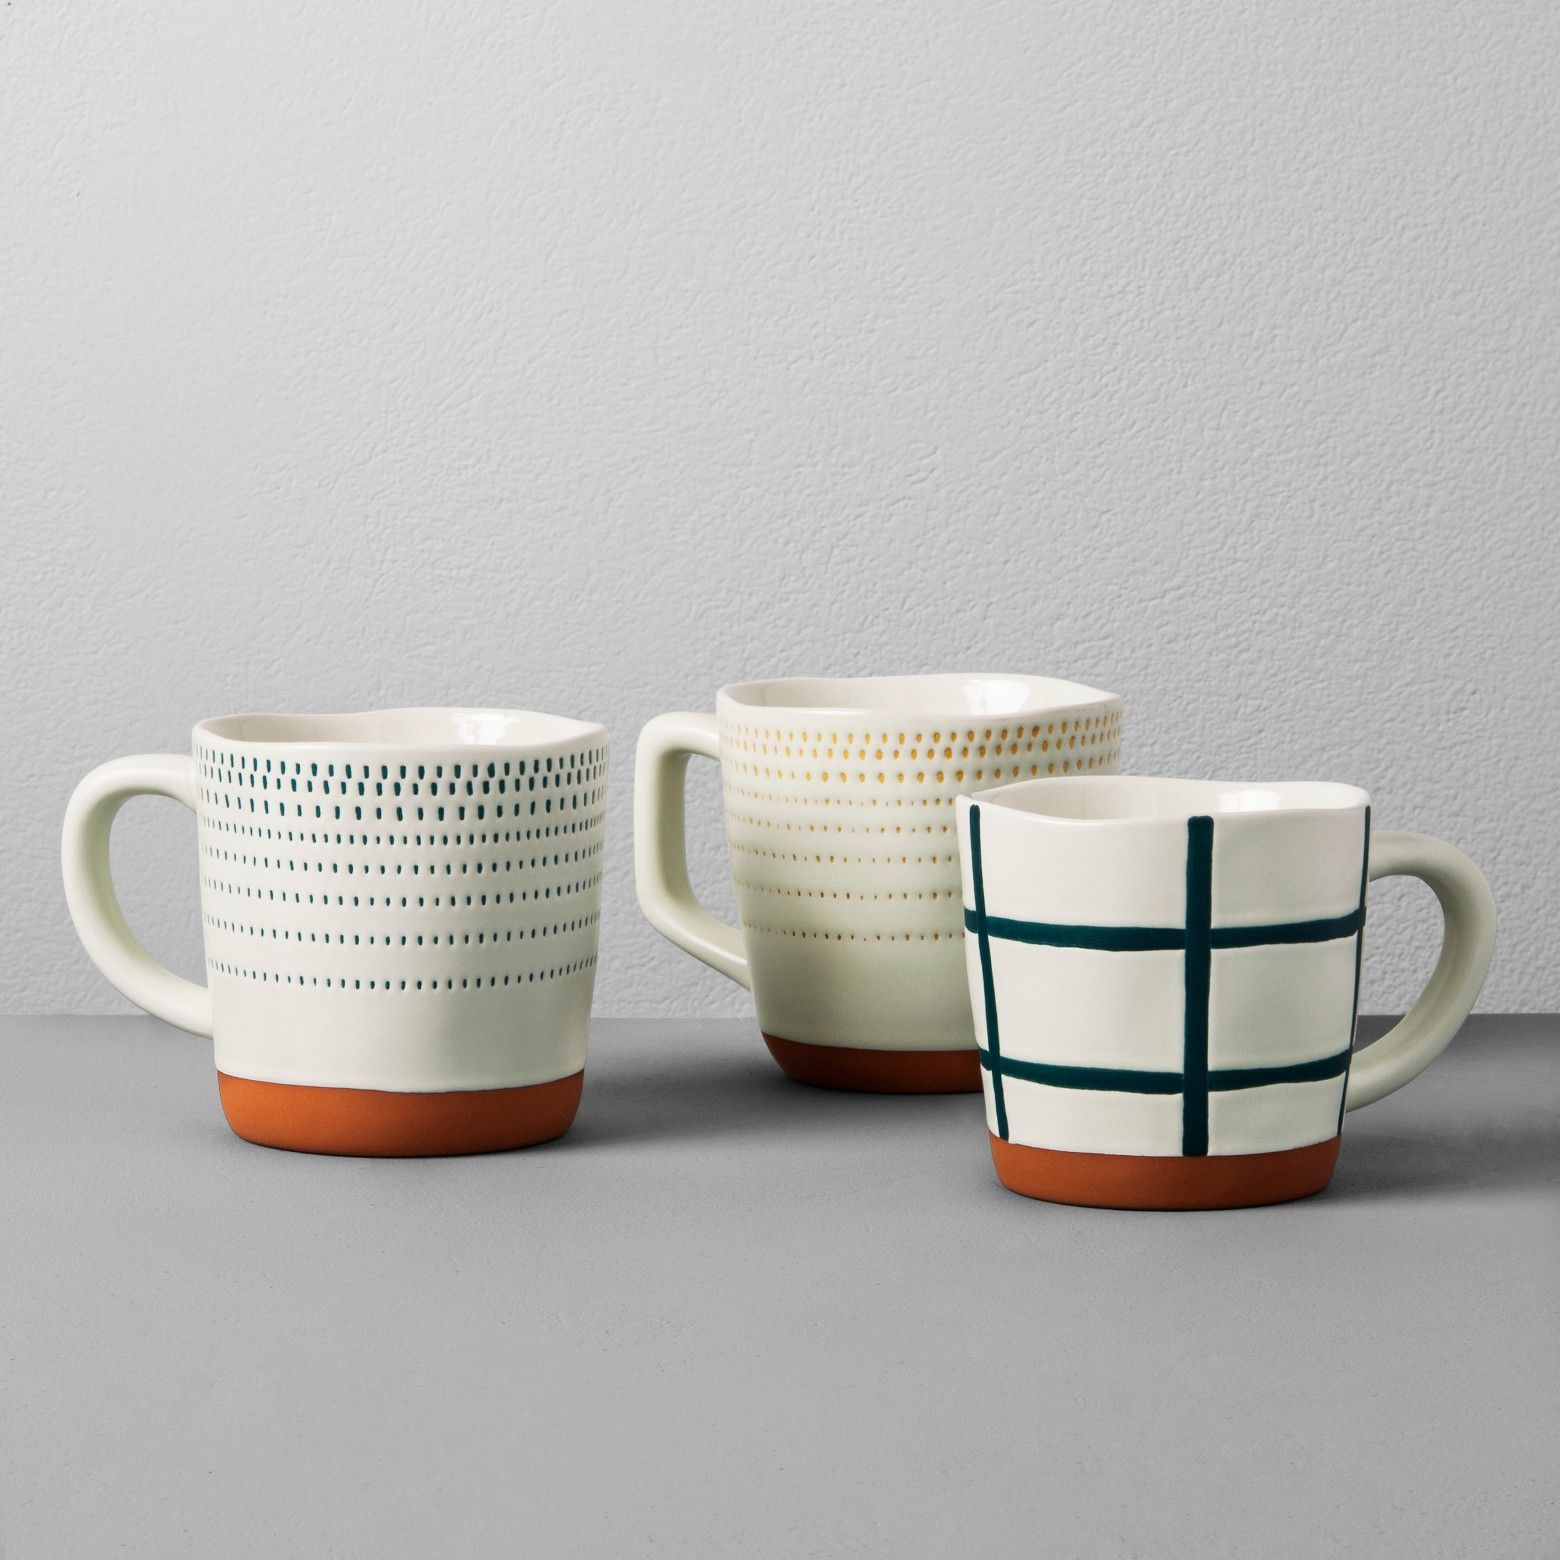 Warm your kitchen with the handmade look of this Stoneware